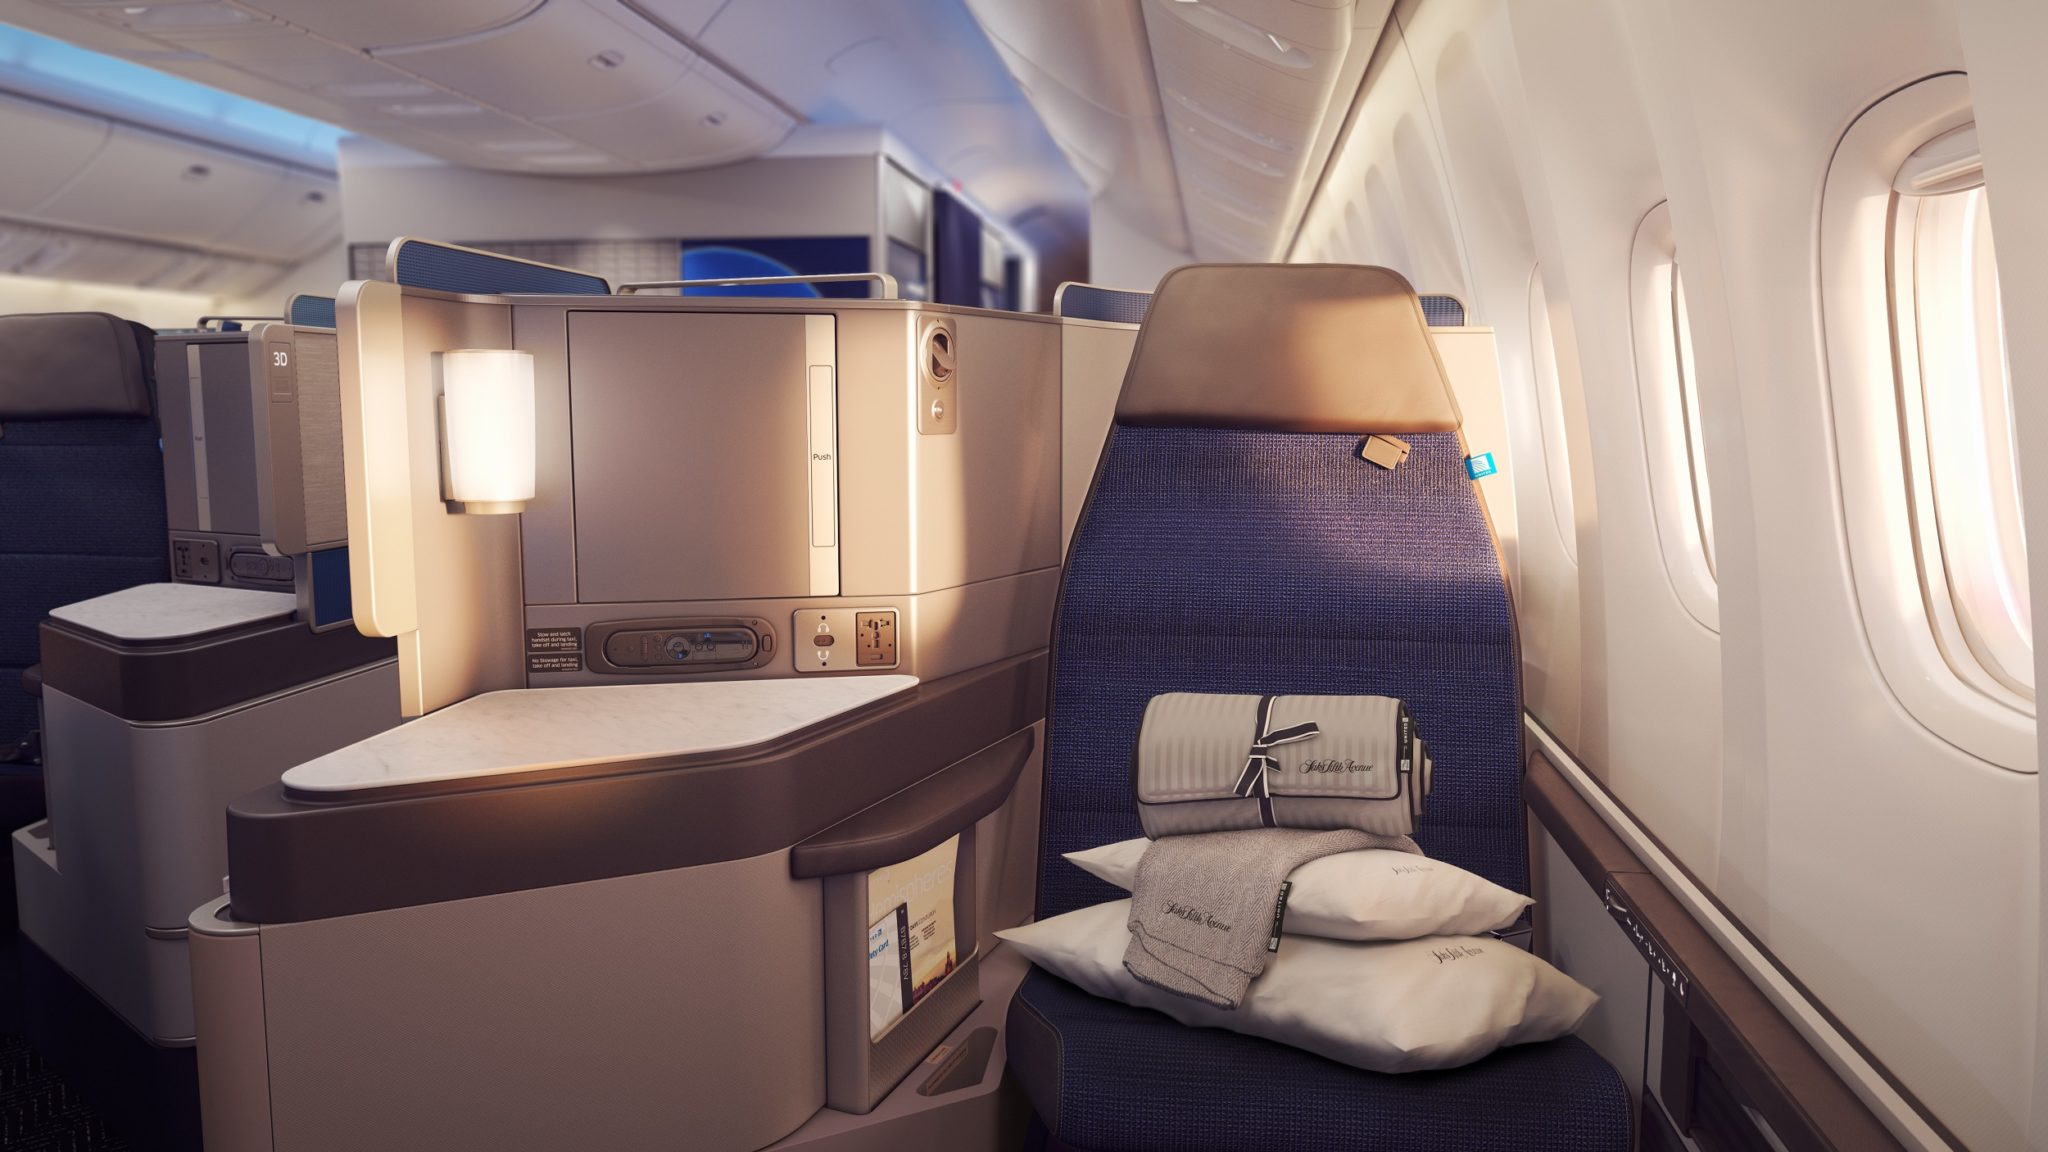 United Polaris - Seat, Amenities, Routes, Lounges & More [2019]